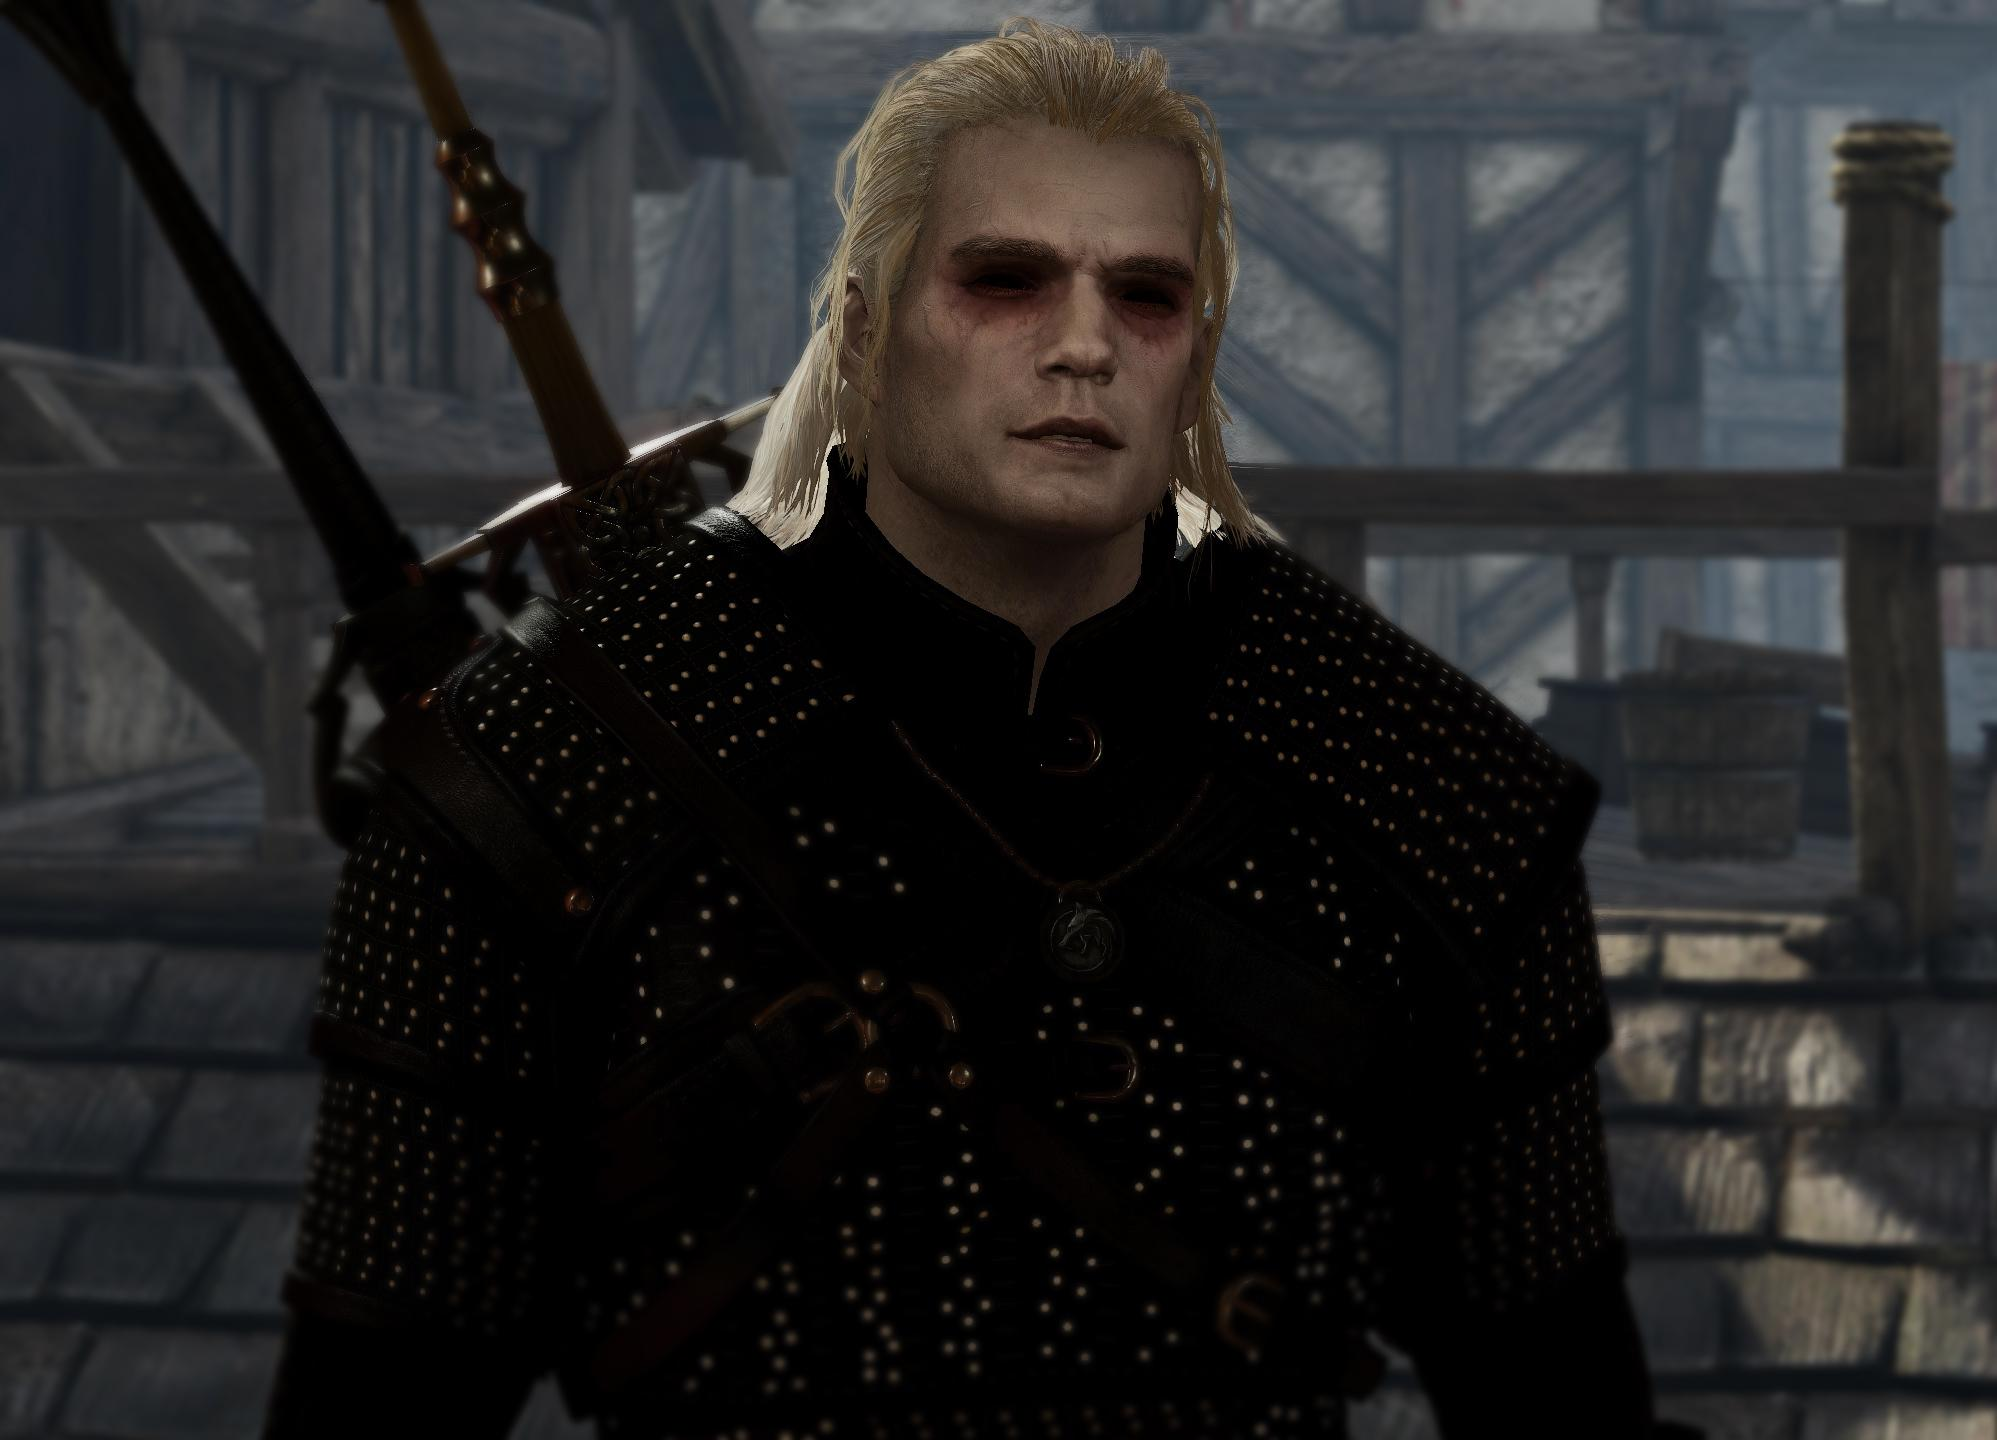 Una mod porta Henry Cavill ed Anya Chalotra in The Witcher 3